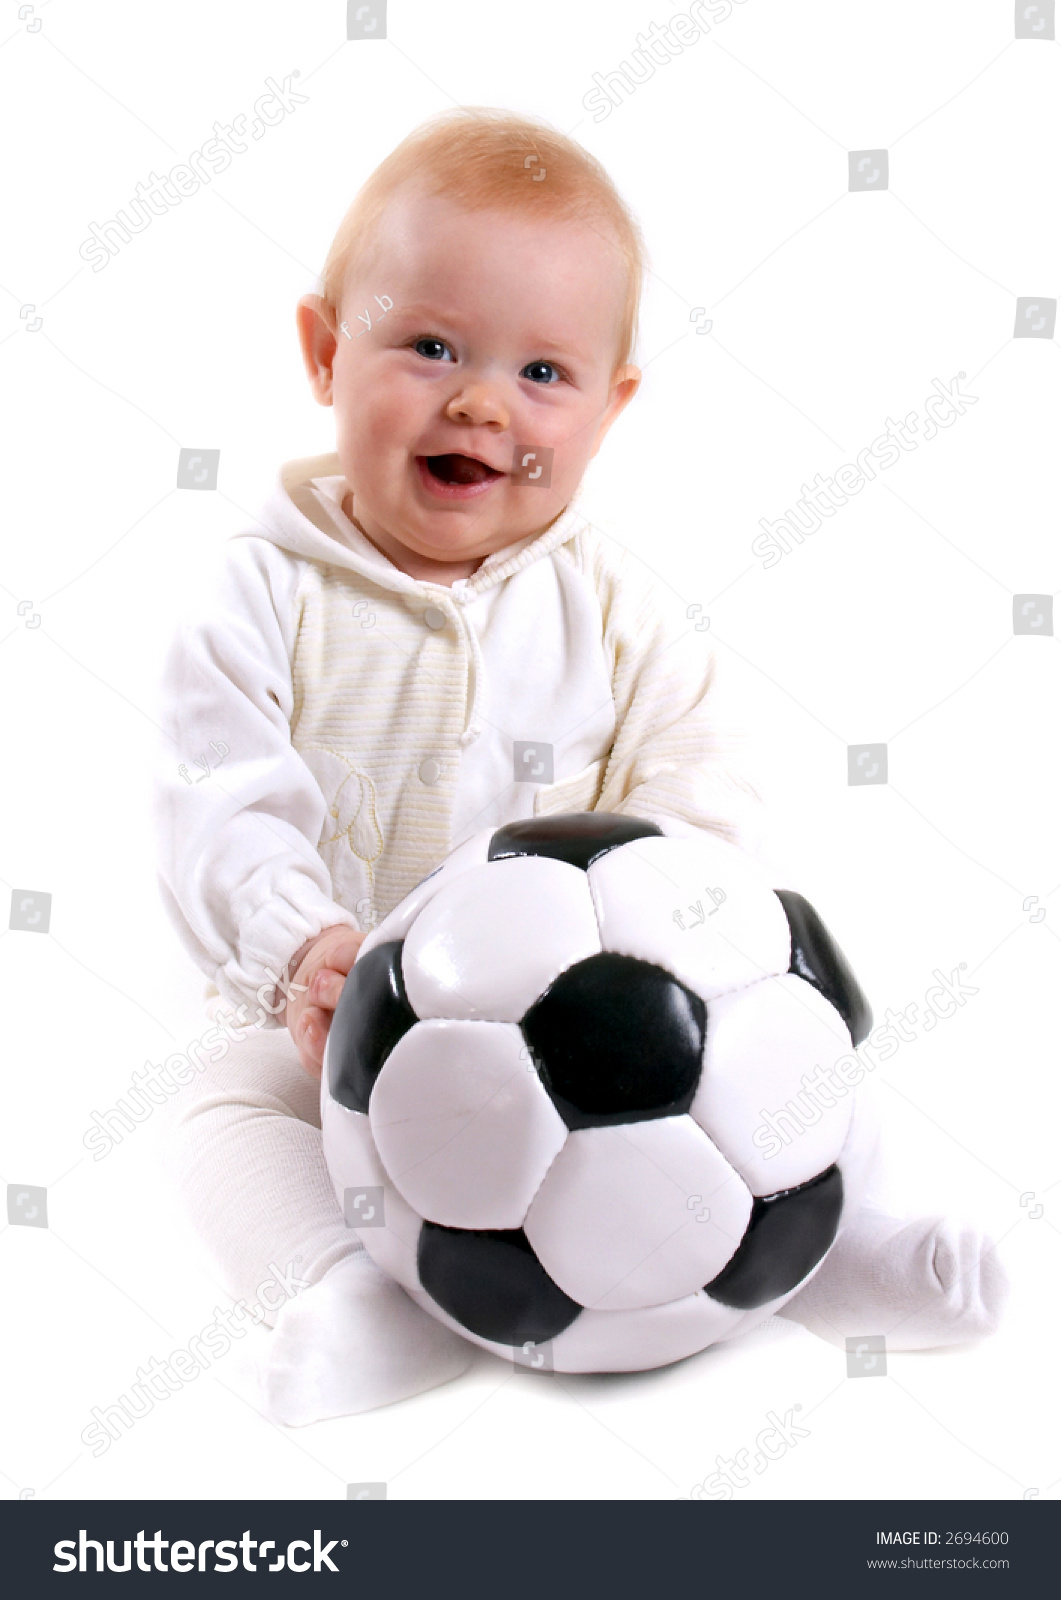 Cute Stock Photography: Cute Little Baby Soccer Ball Stock Photo 2694600